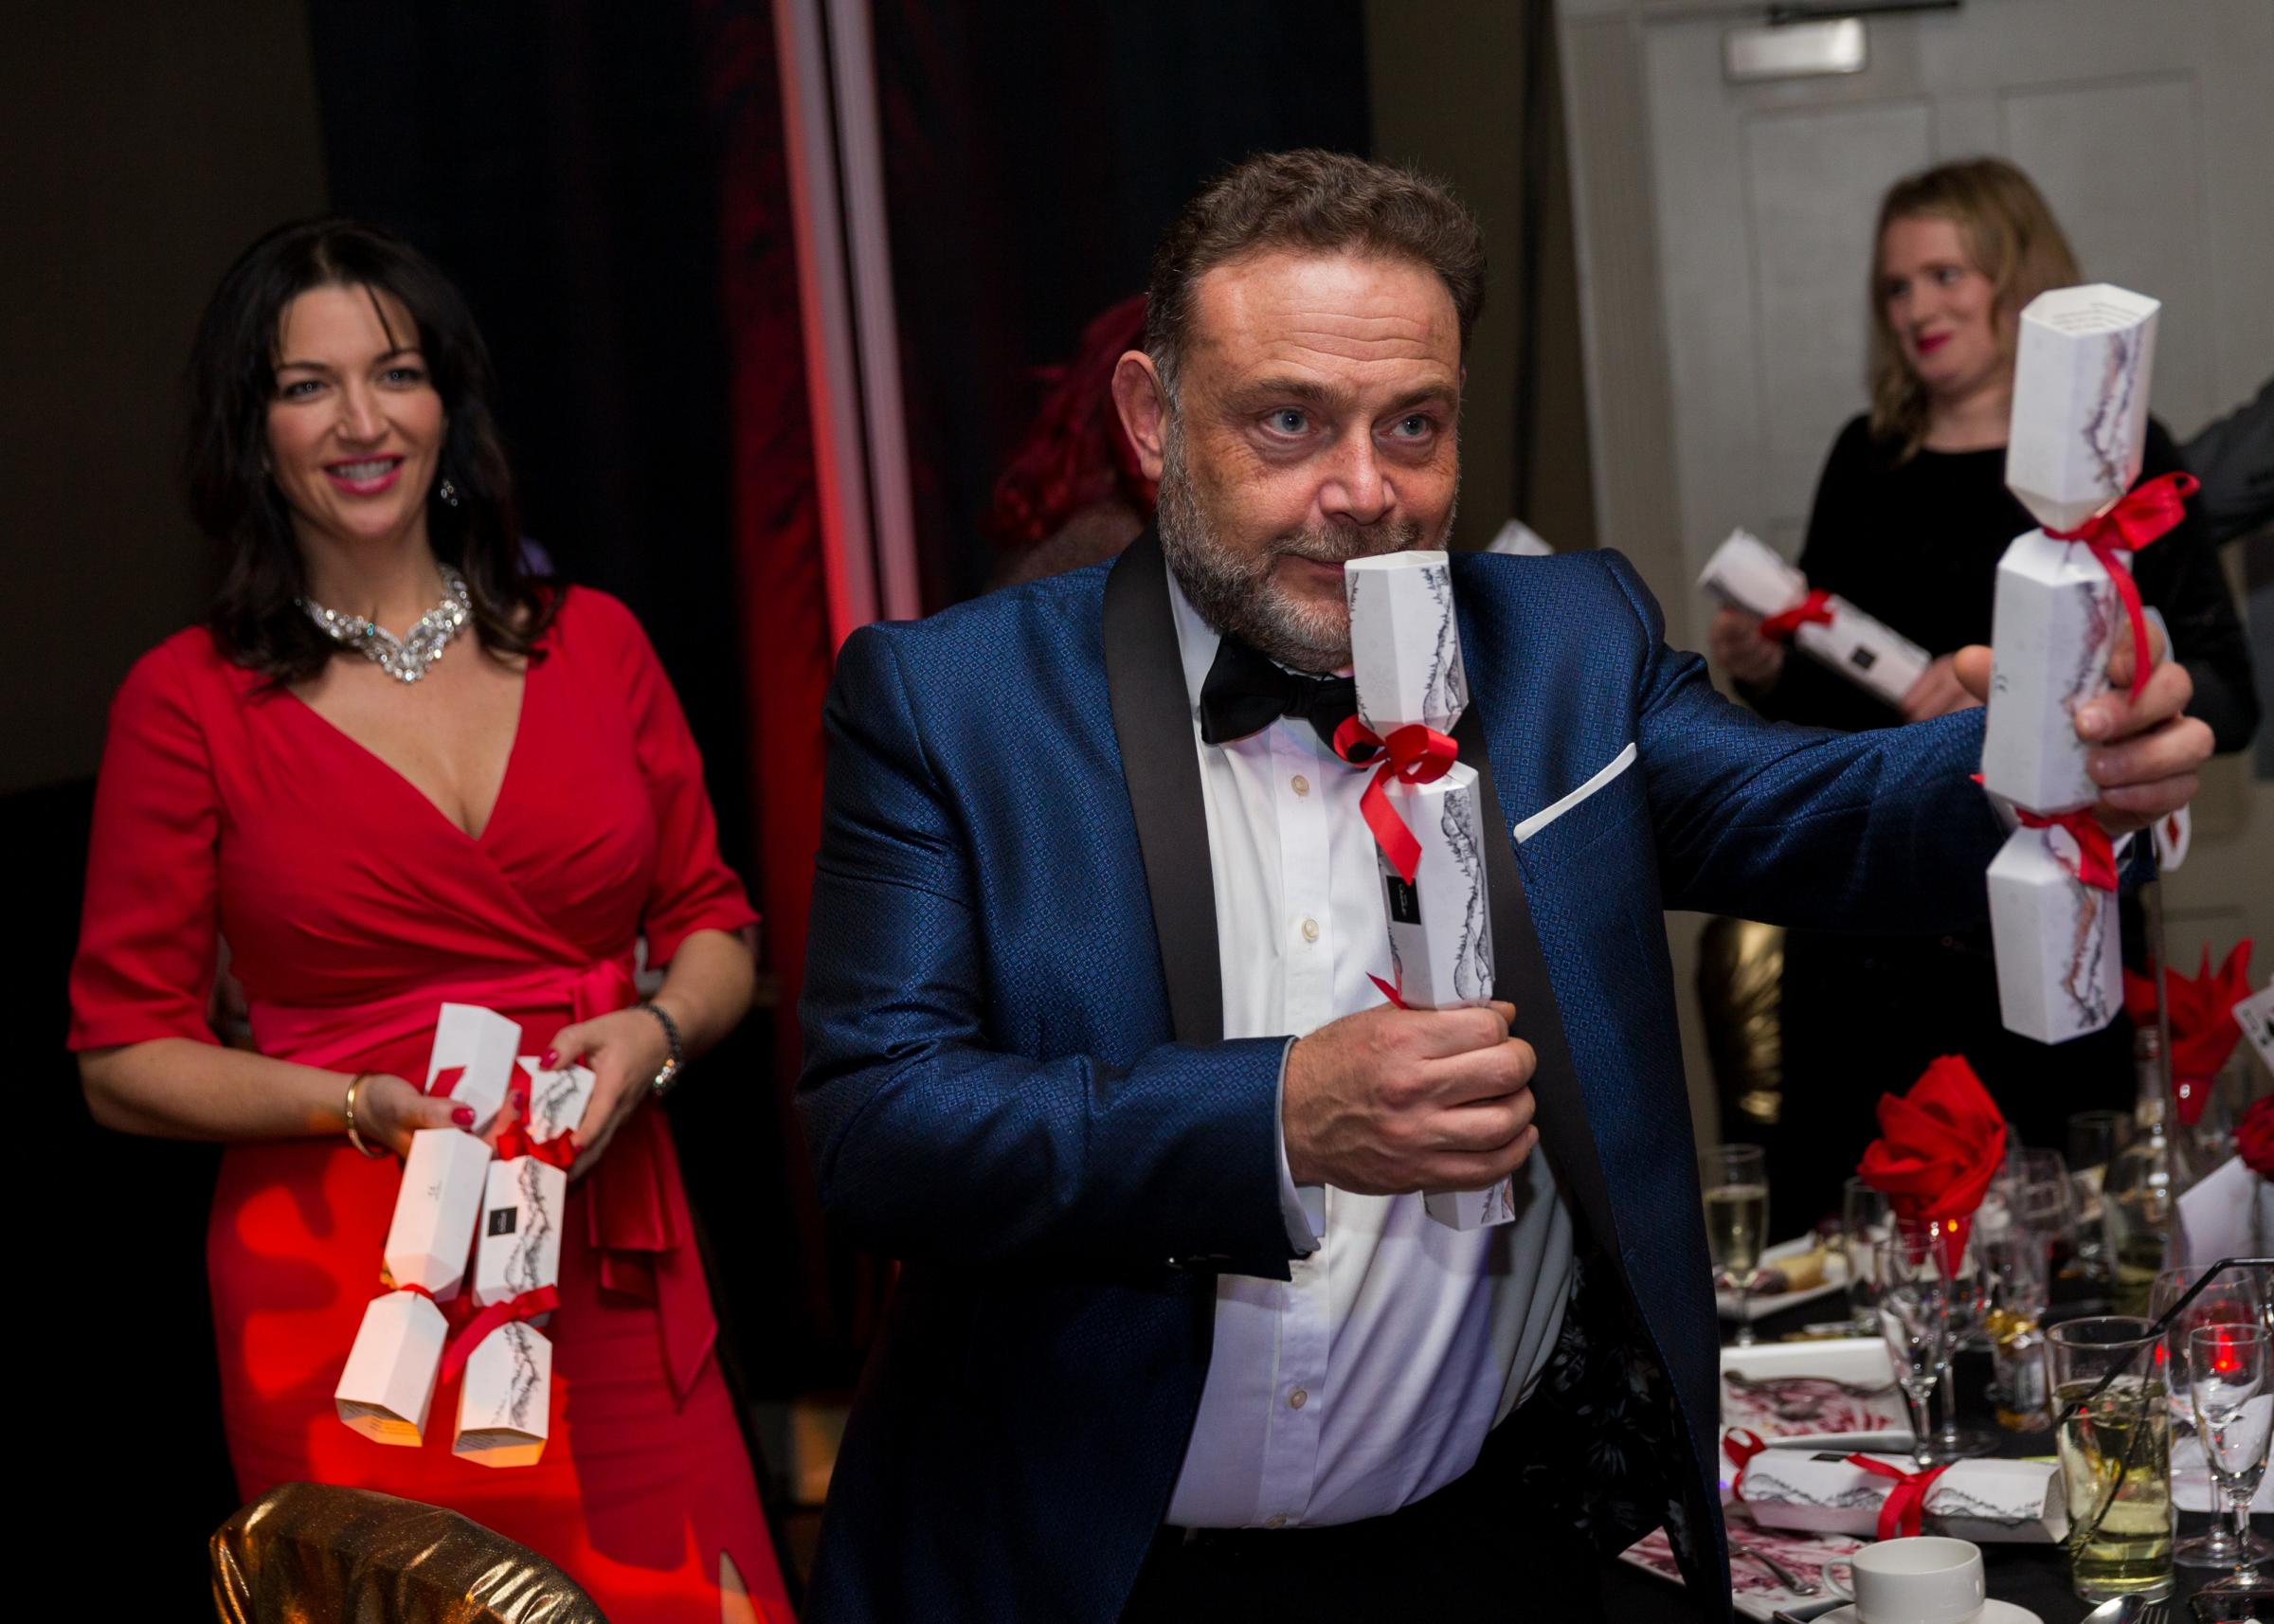 Cold Feet star John Thomson hosting night at Bury pub - here's how to get two free tickets